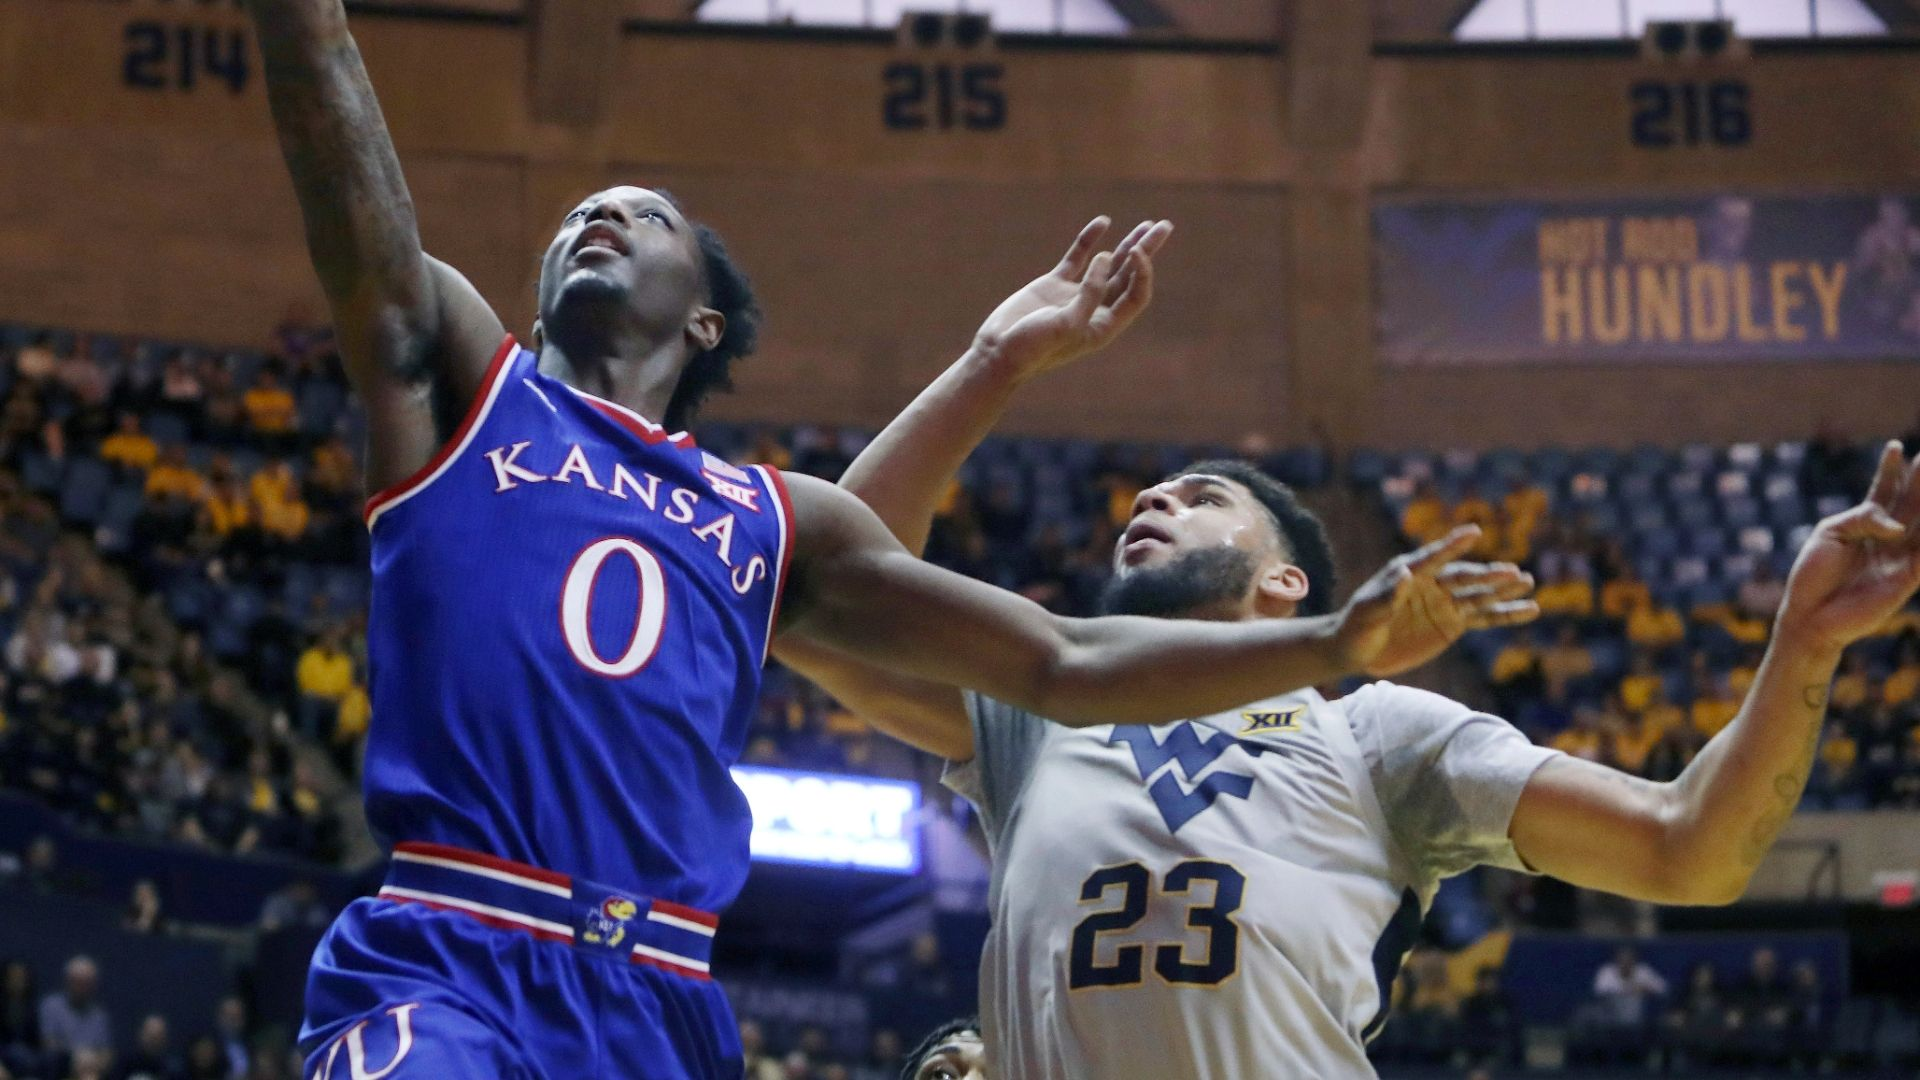 West Virginia rallies in final minutes to upset Kansas